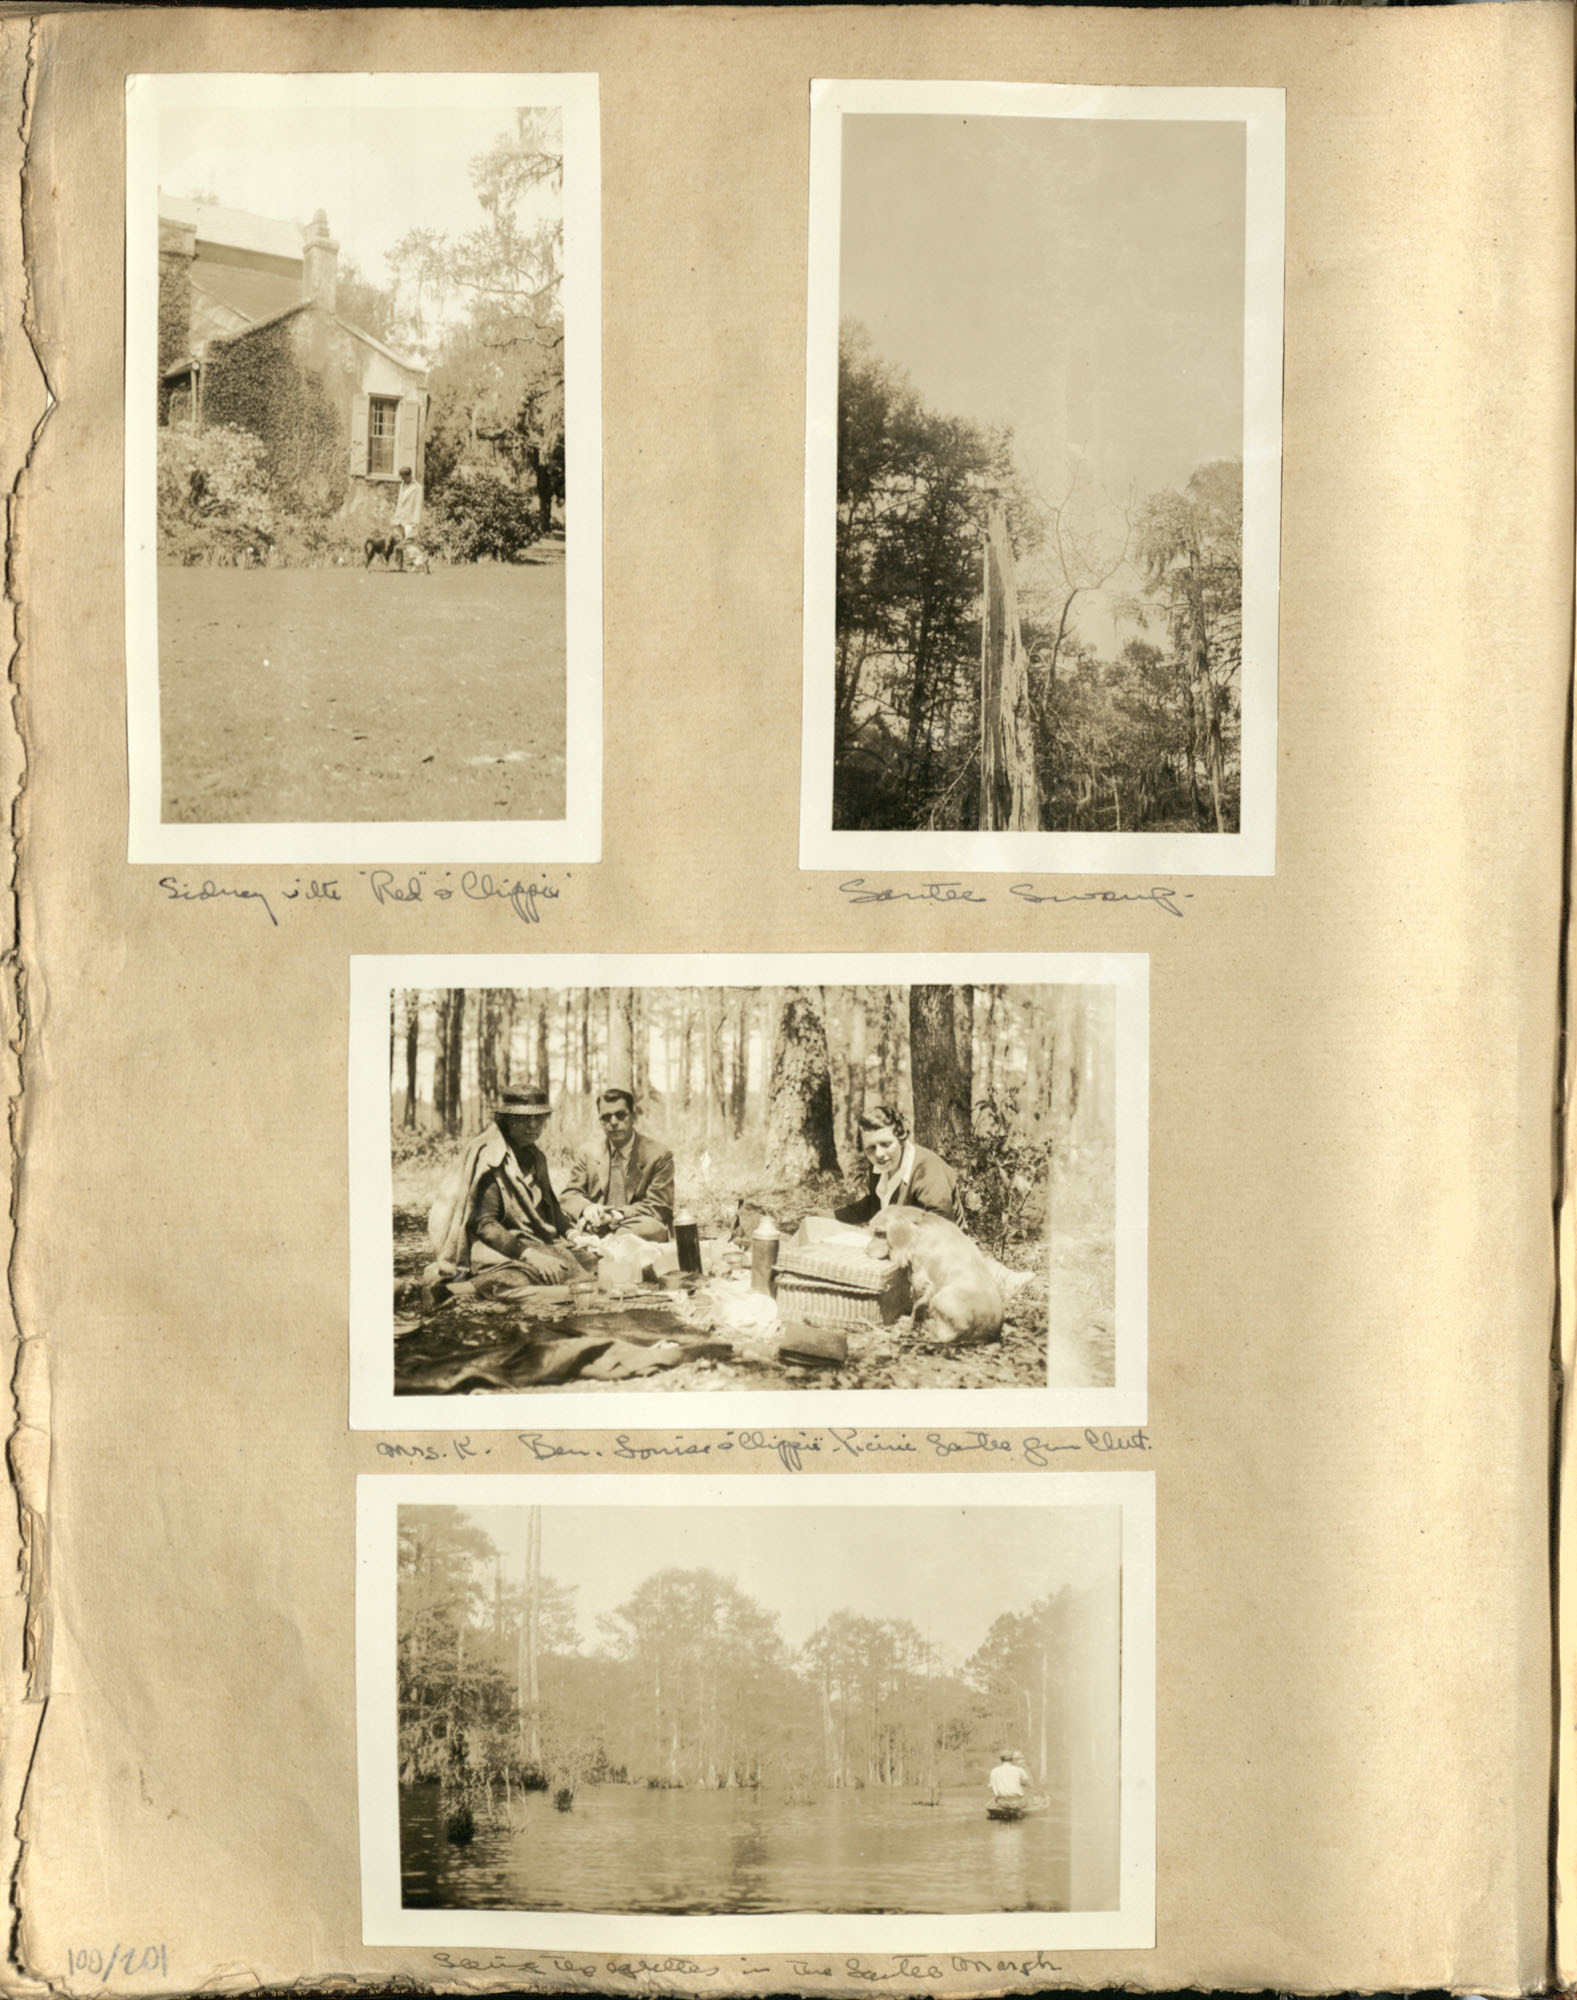 Early Medway and travels album, 1929-1937, page 100